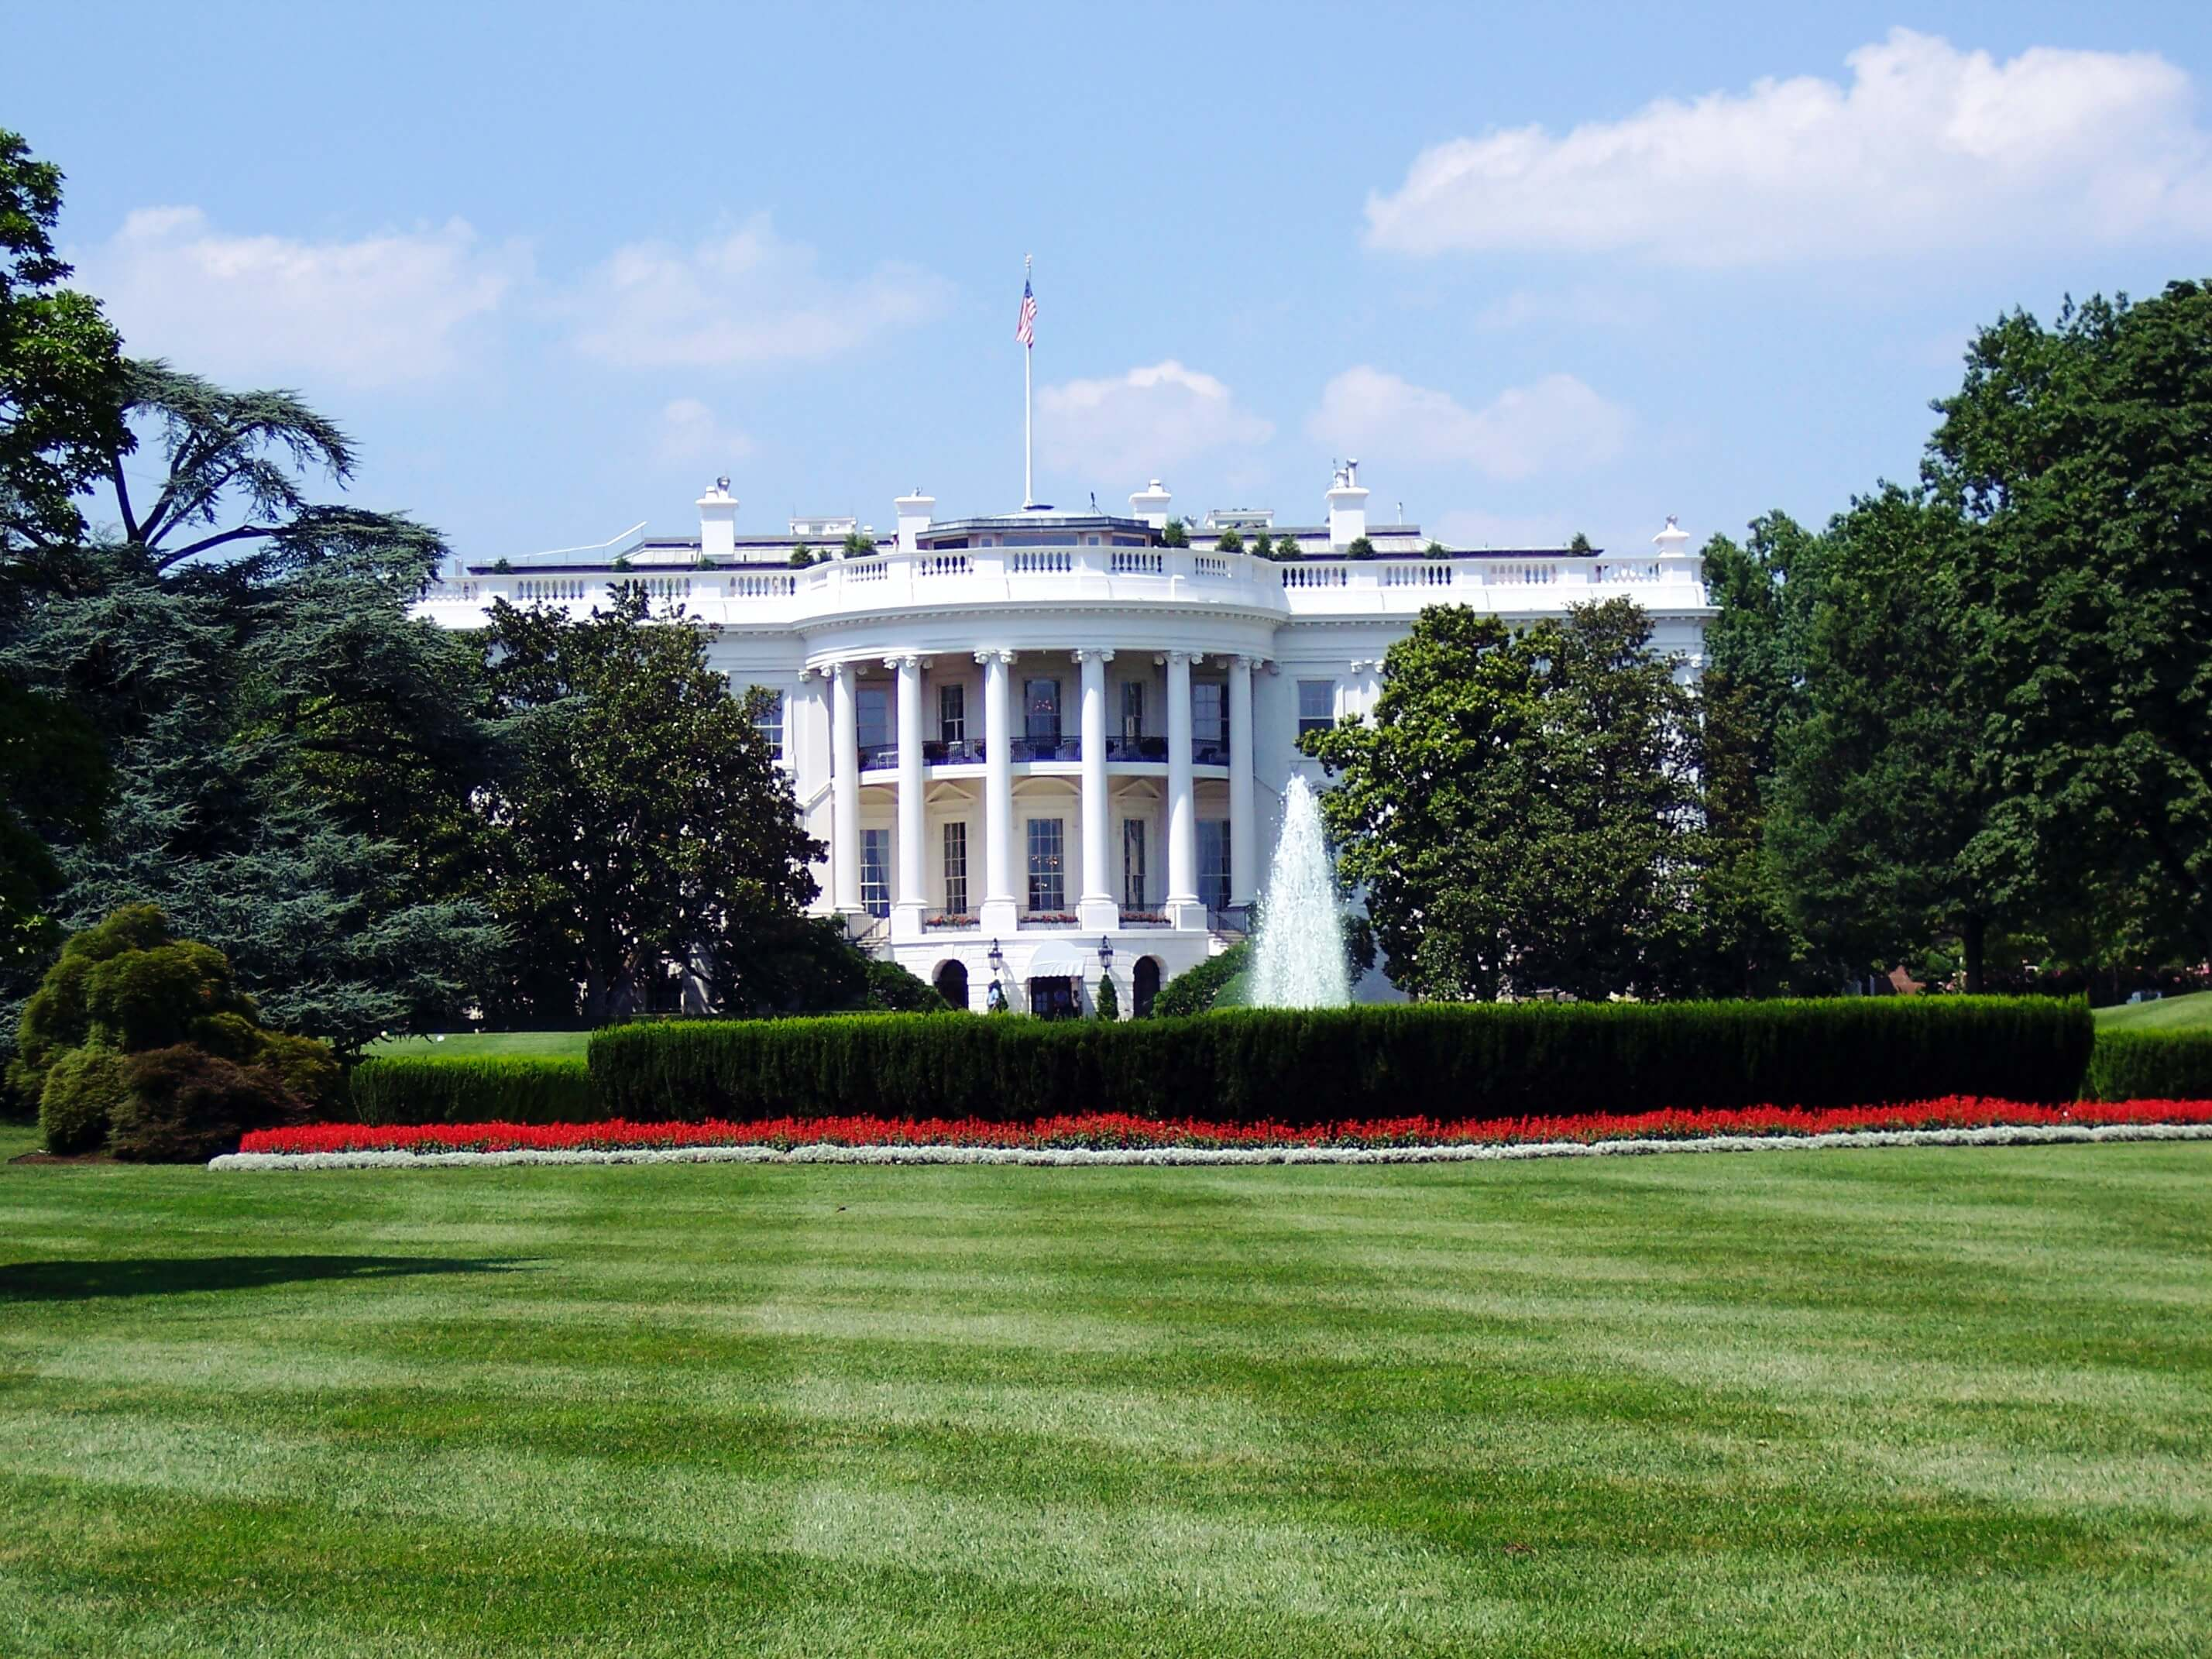 Renting a Shuttle Bus In Washington DC is much easier with our Guide in 2021